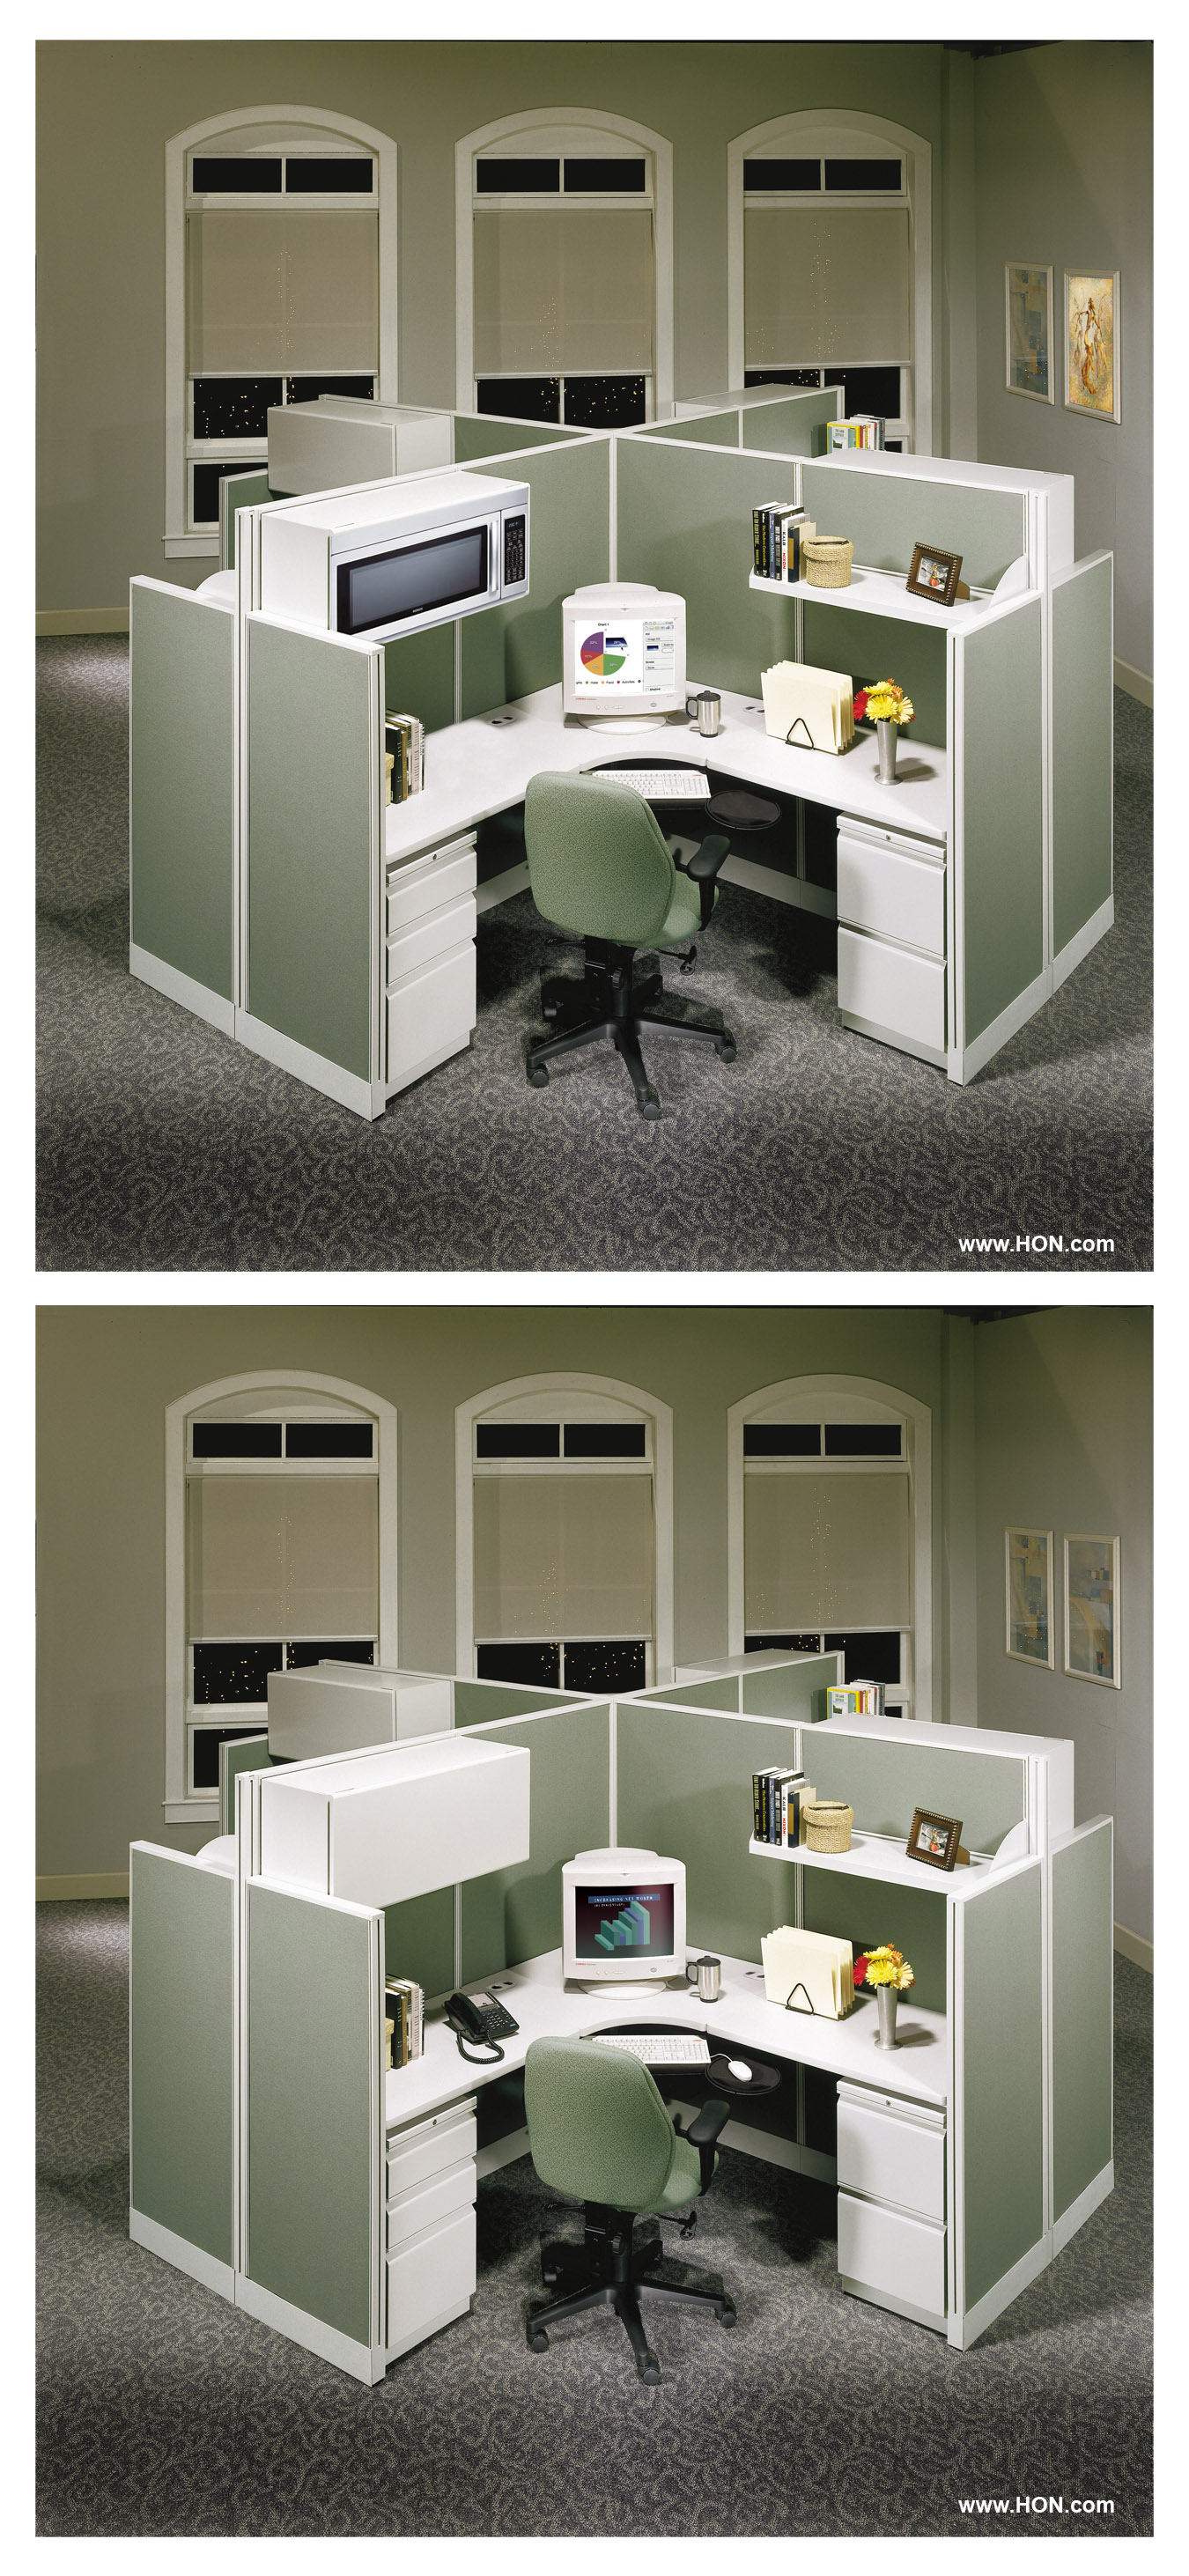 USEDHONOfficeDesign1 Vertical Can you spot the differences?